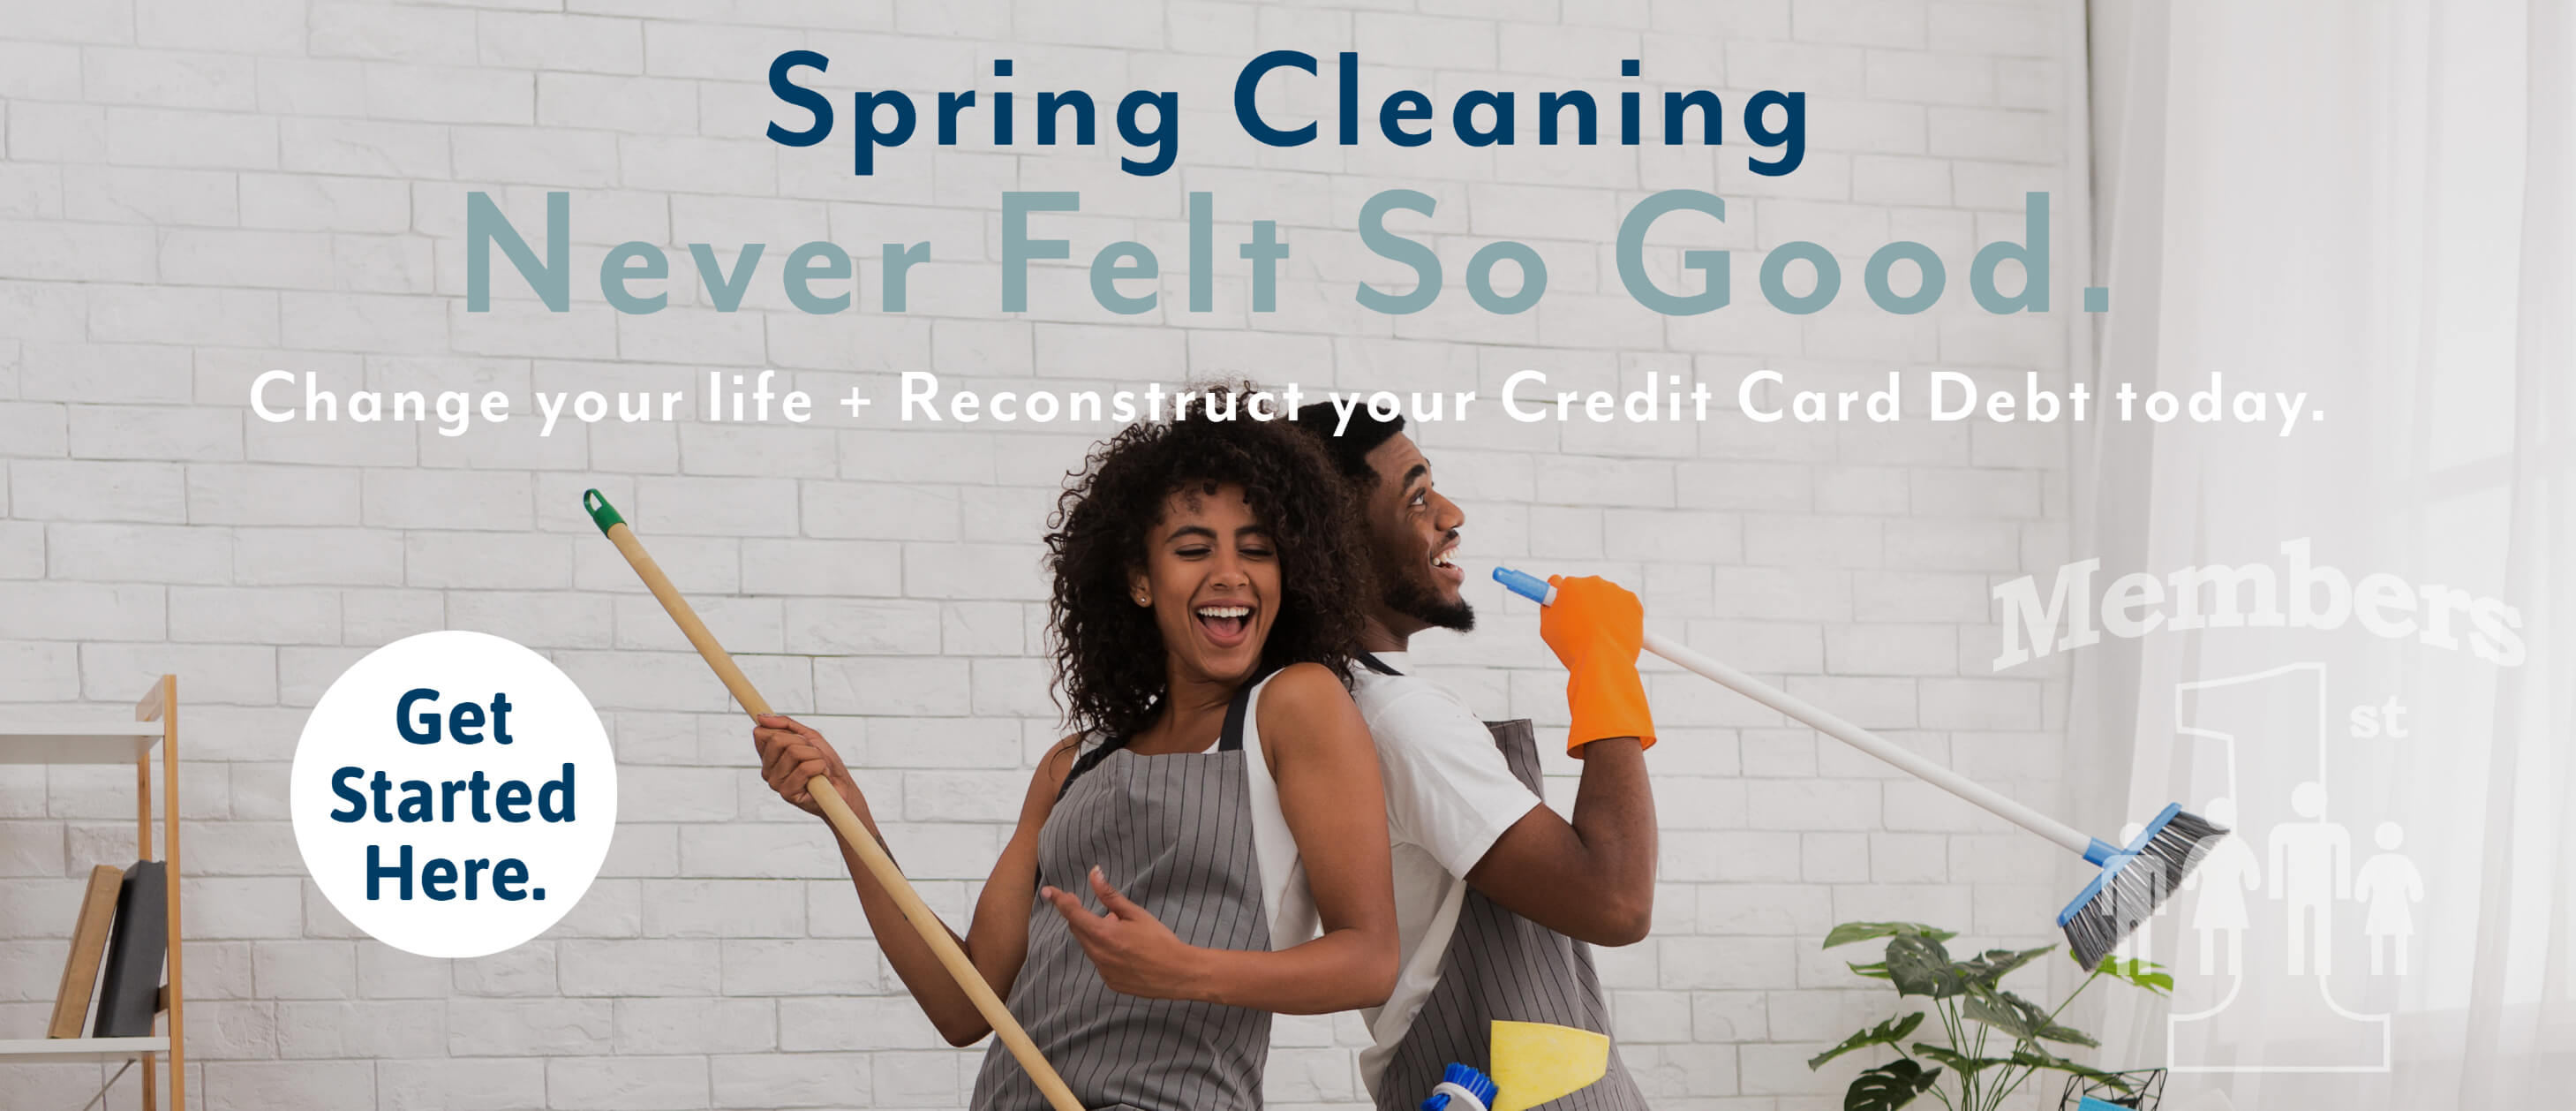 Spring Cleaning - Debt Cons